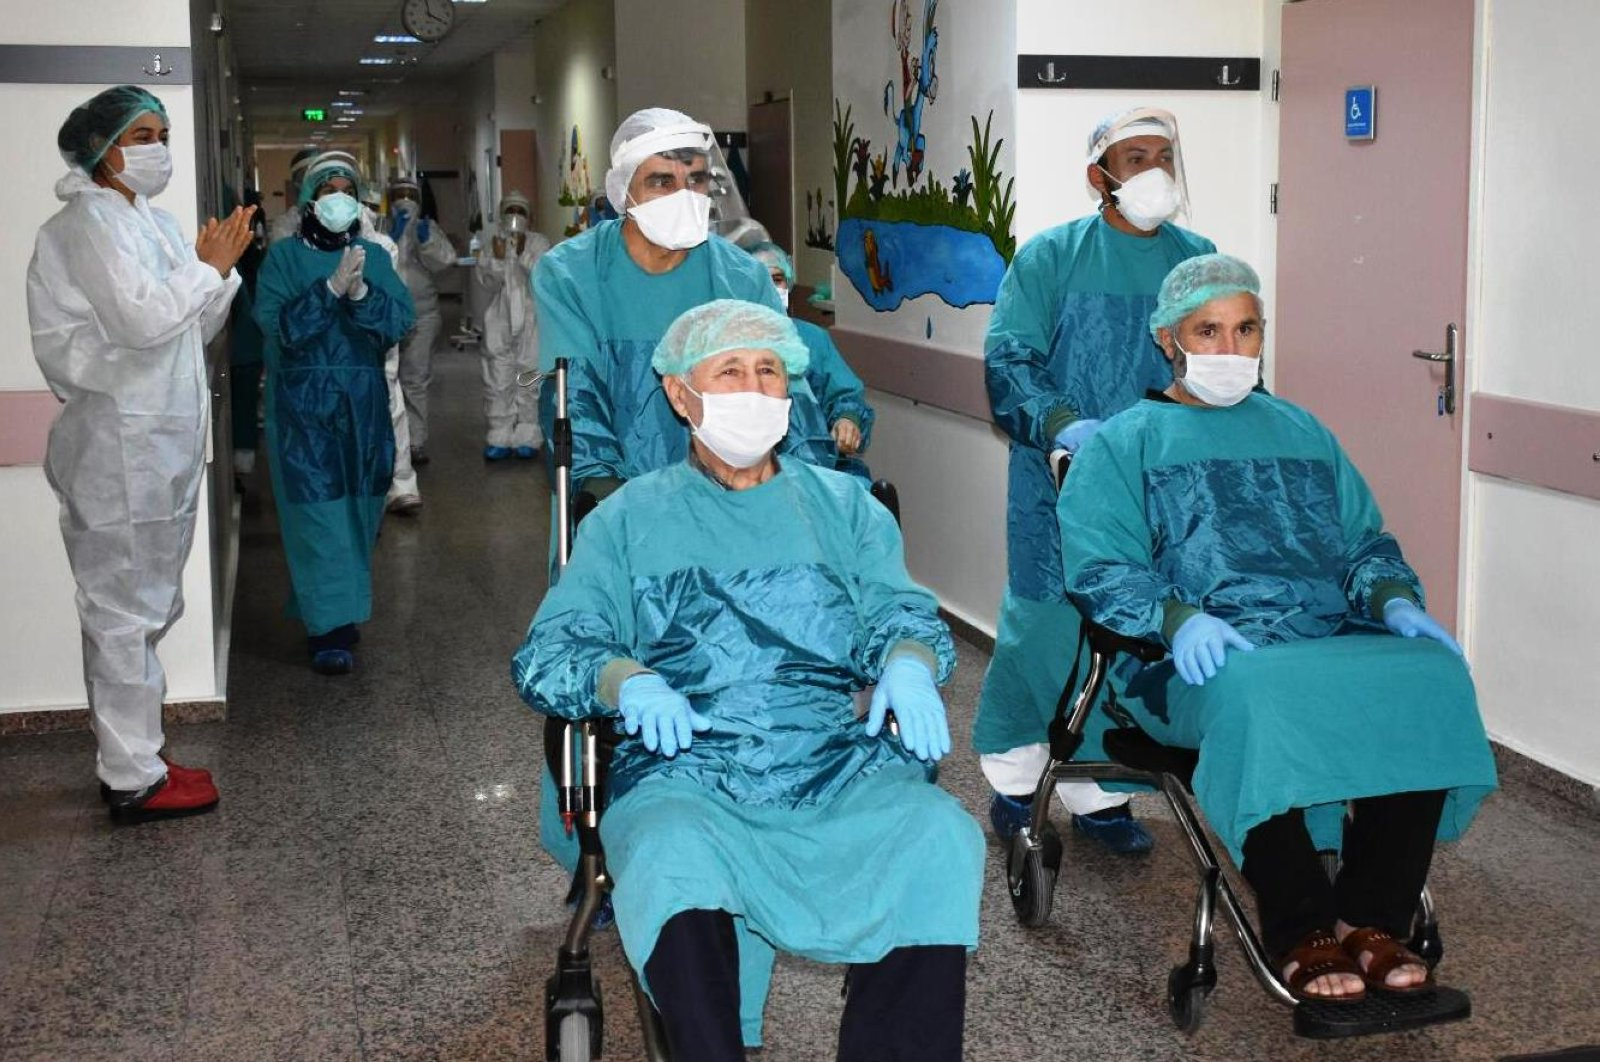 COVID-19 patients are discharged from a hospital in Osmaniye province on Friday, April 24, 2020 (AA Photo)